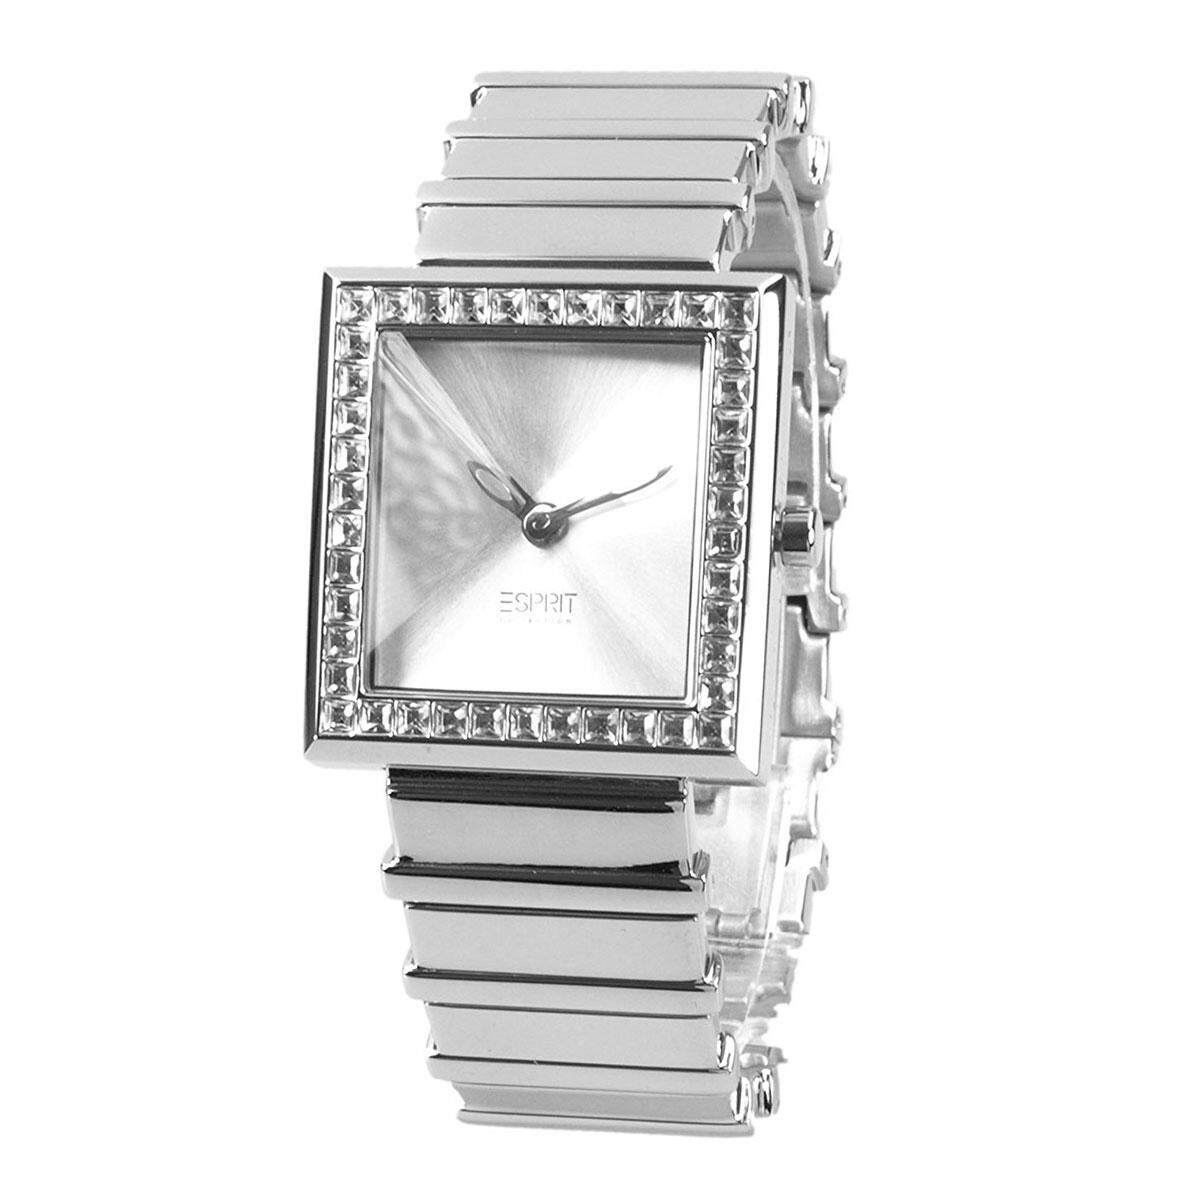 save off 39e27 6e51d Ladies Watches for sale - Business Watch For Women online brands ...